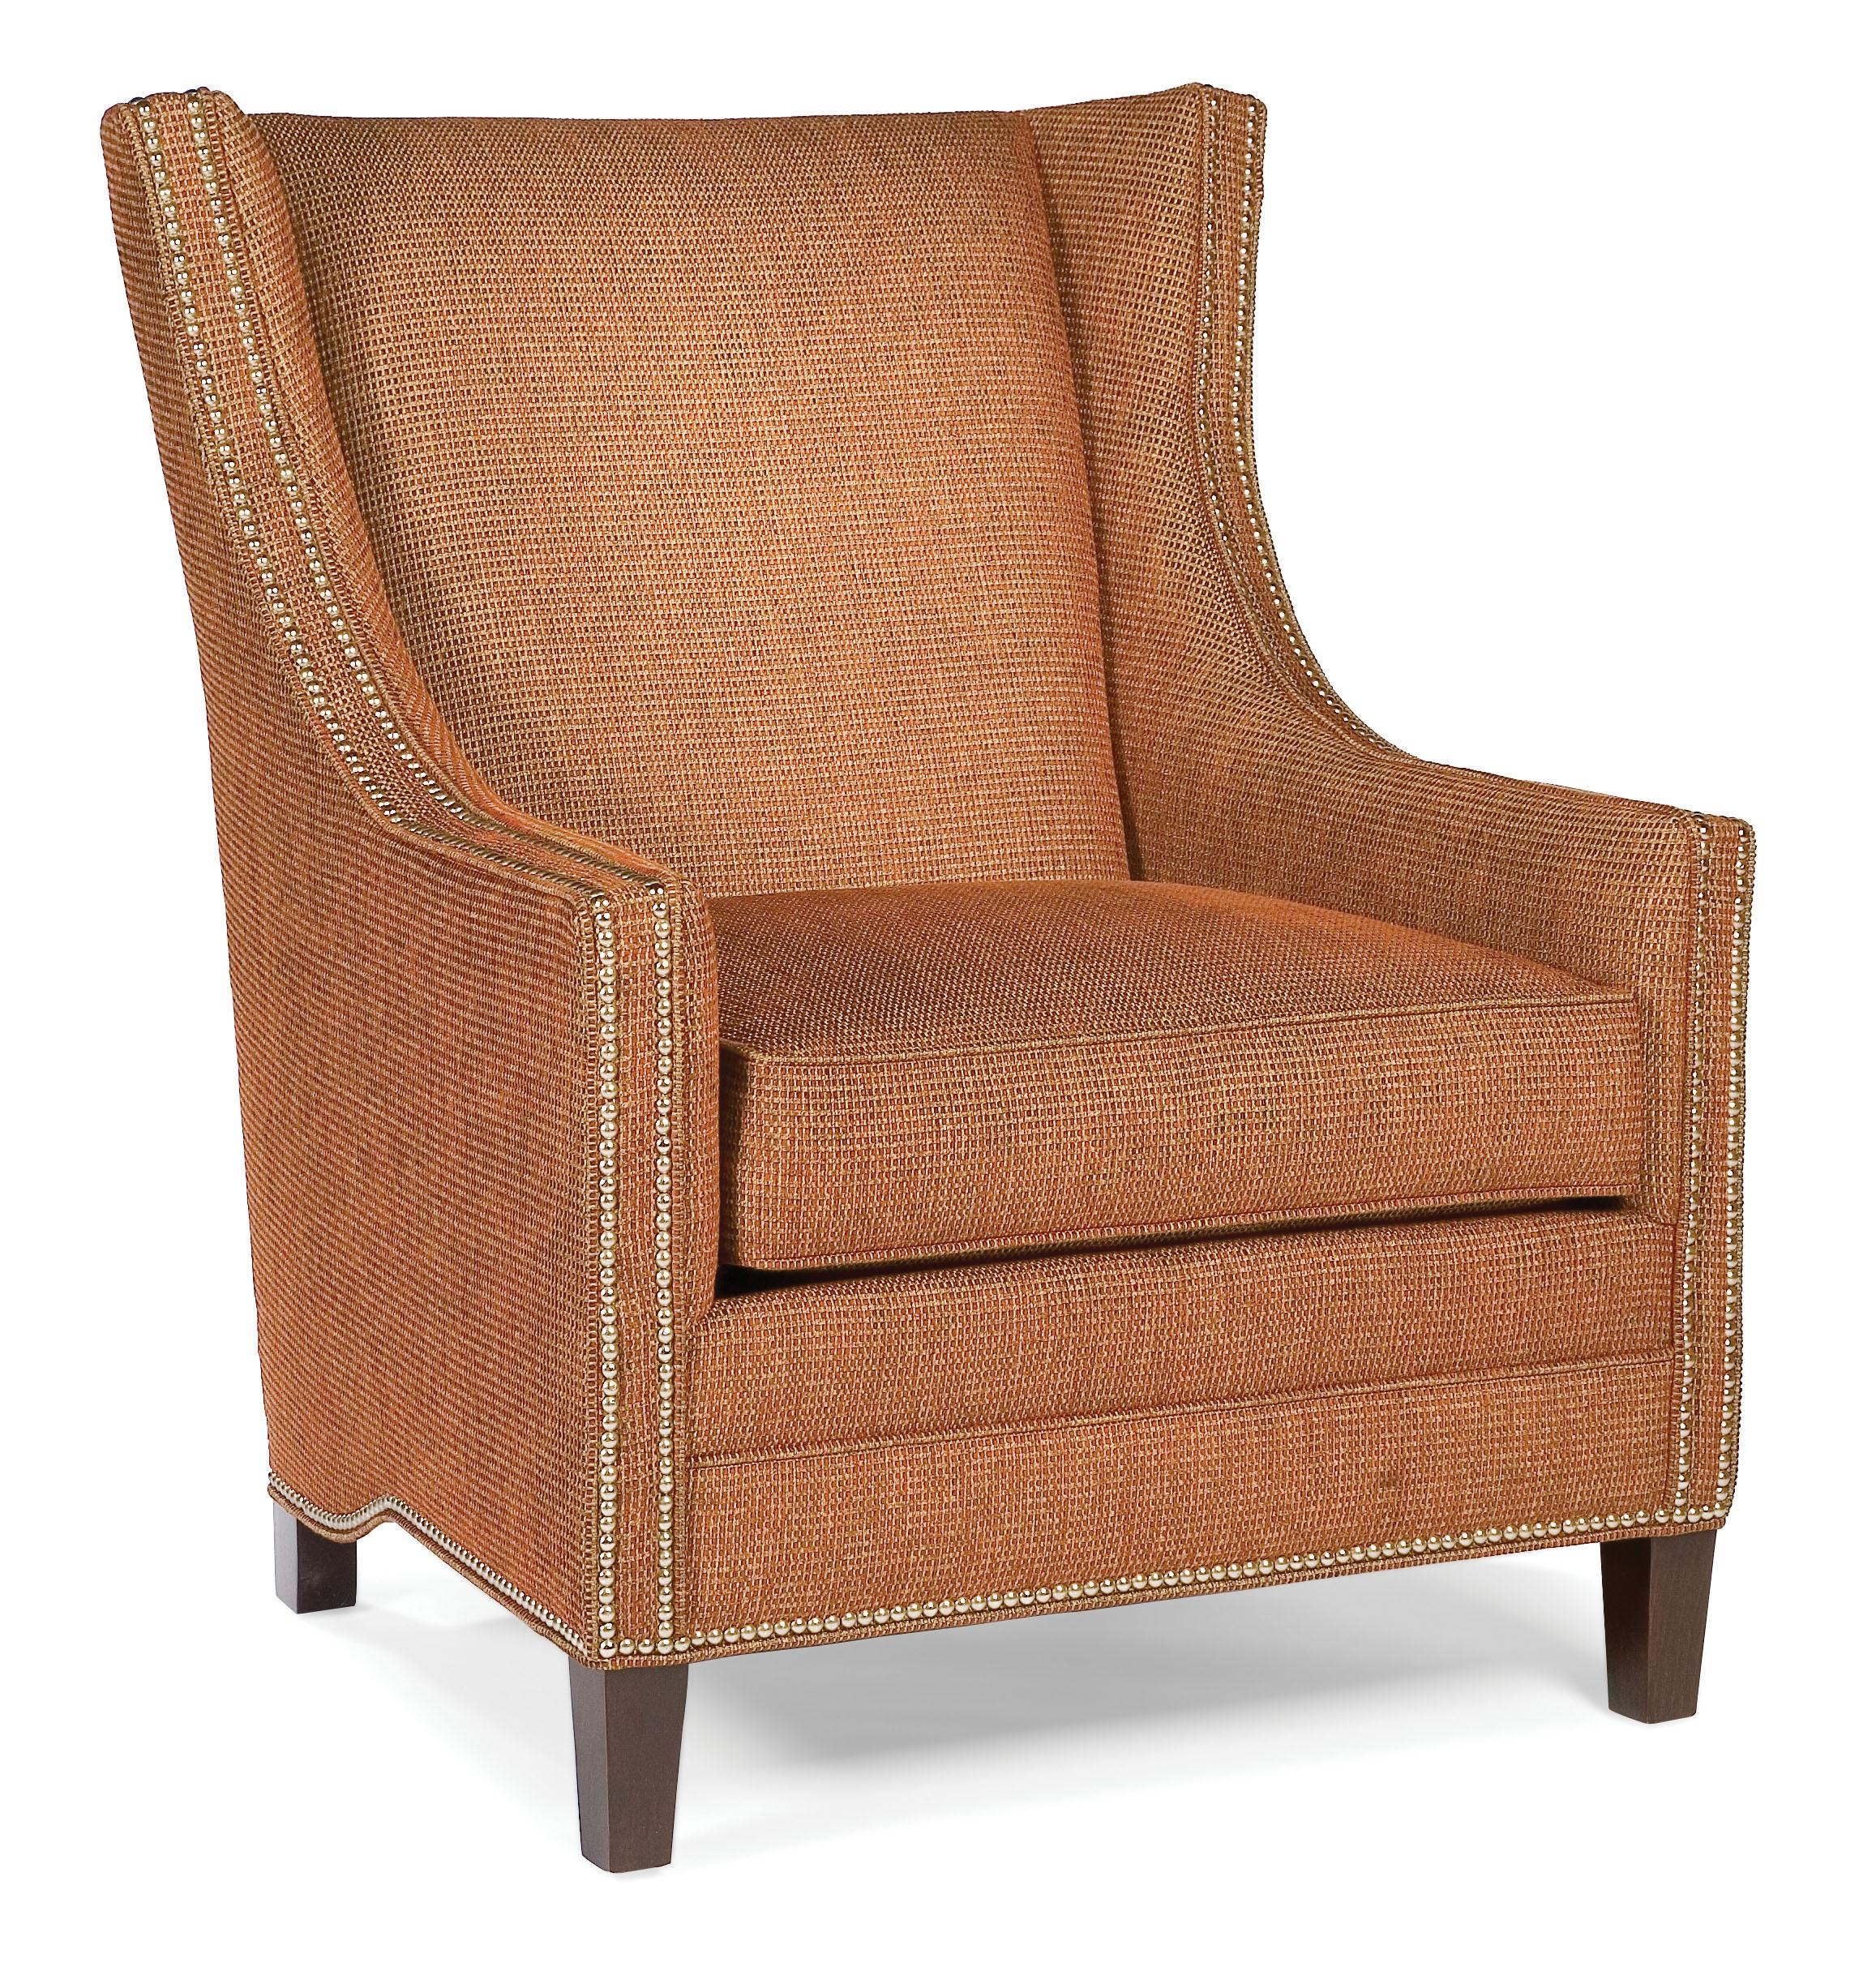 Chairs Upholstered Lounge Chair by Fairfield at Story & Lee Furniture